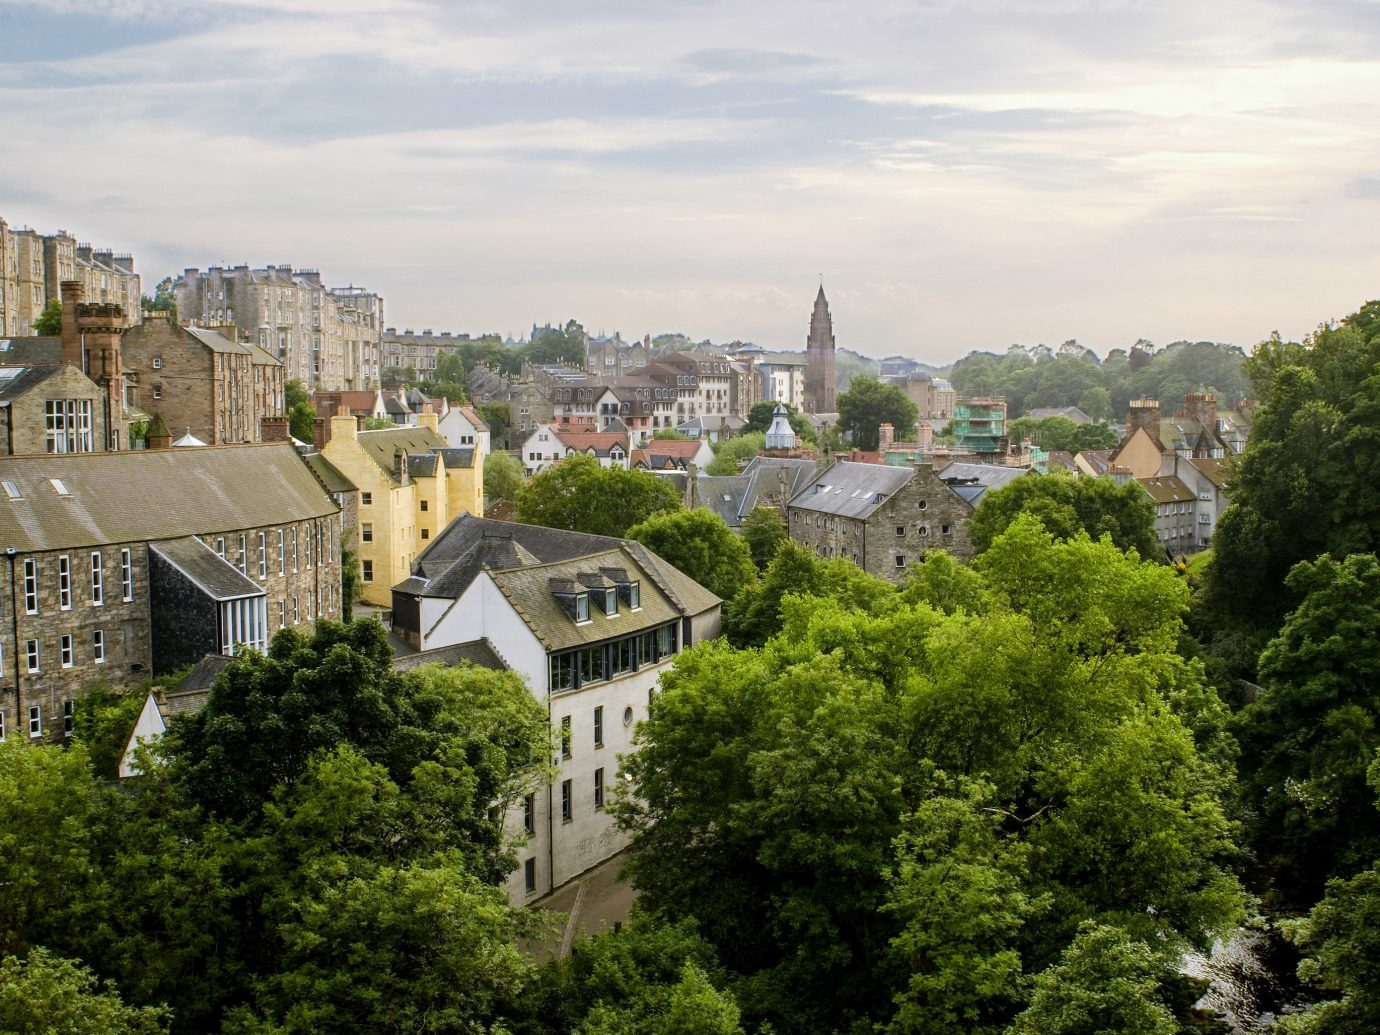 Jetsetter Guides tree outdoor sky landmark Town City urban area human settlement cityscape aerial photography estate tourism River château skyline monastery lush